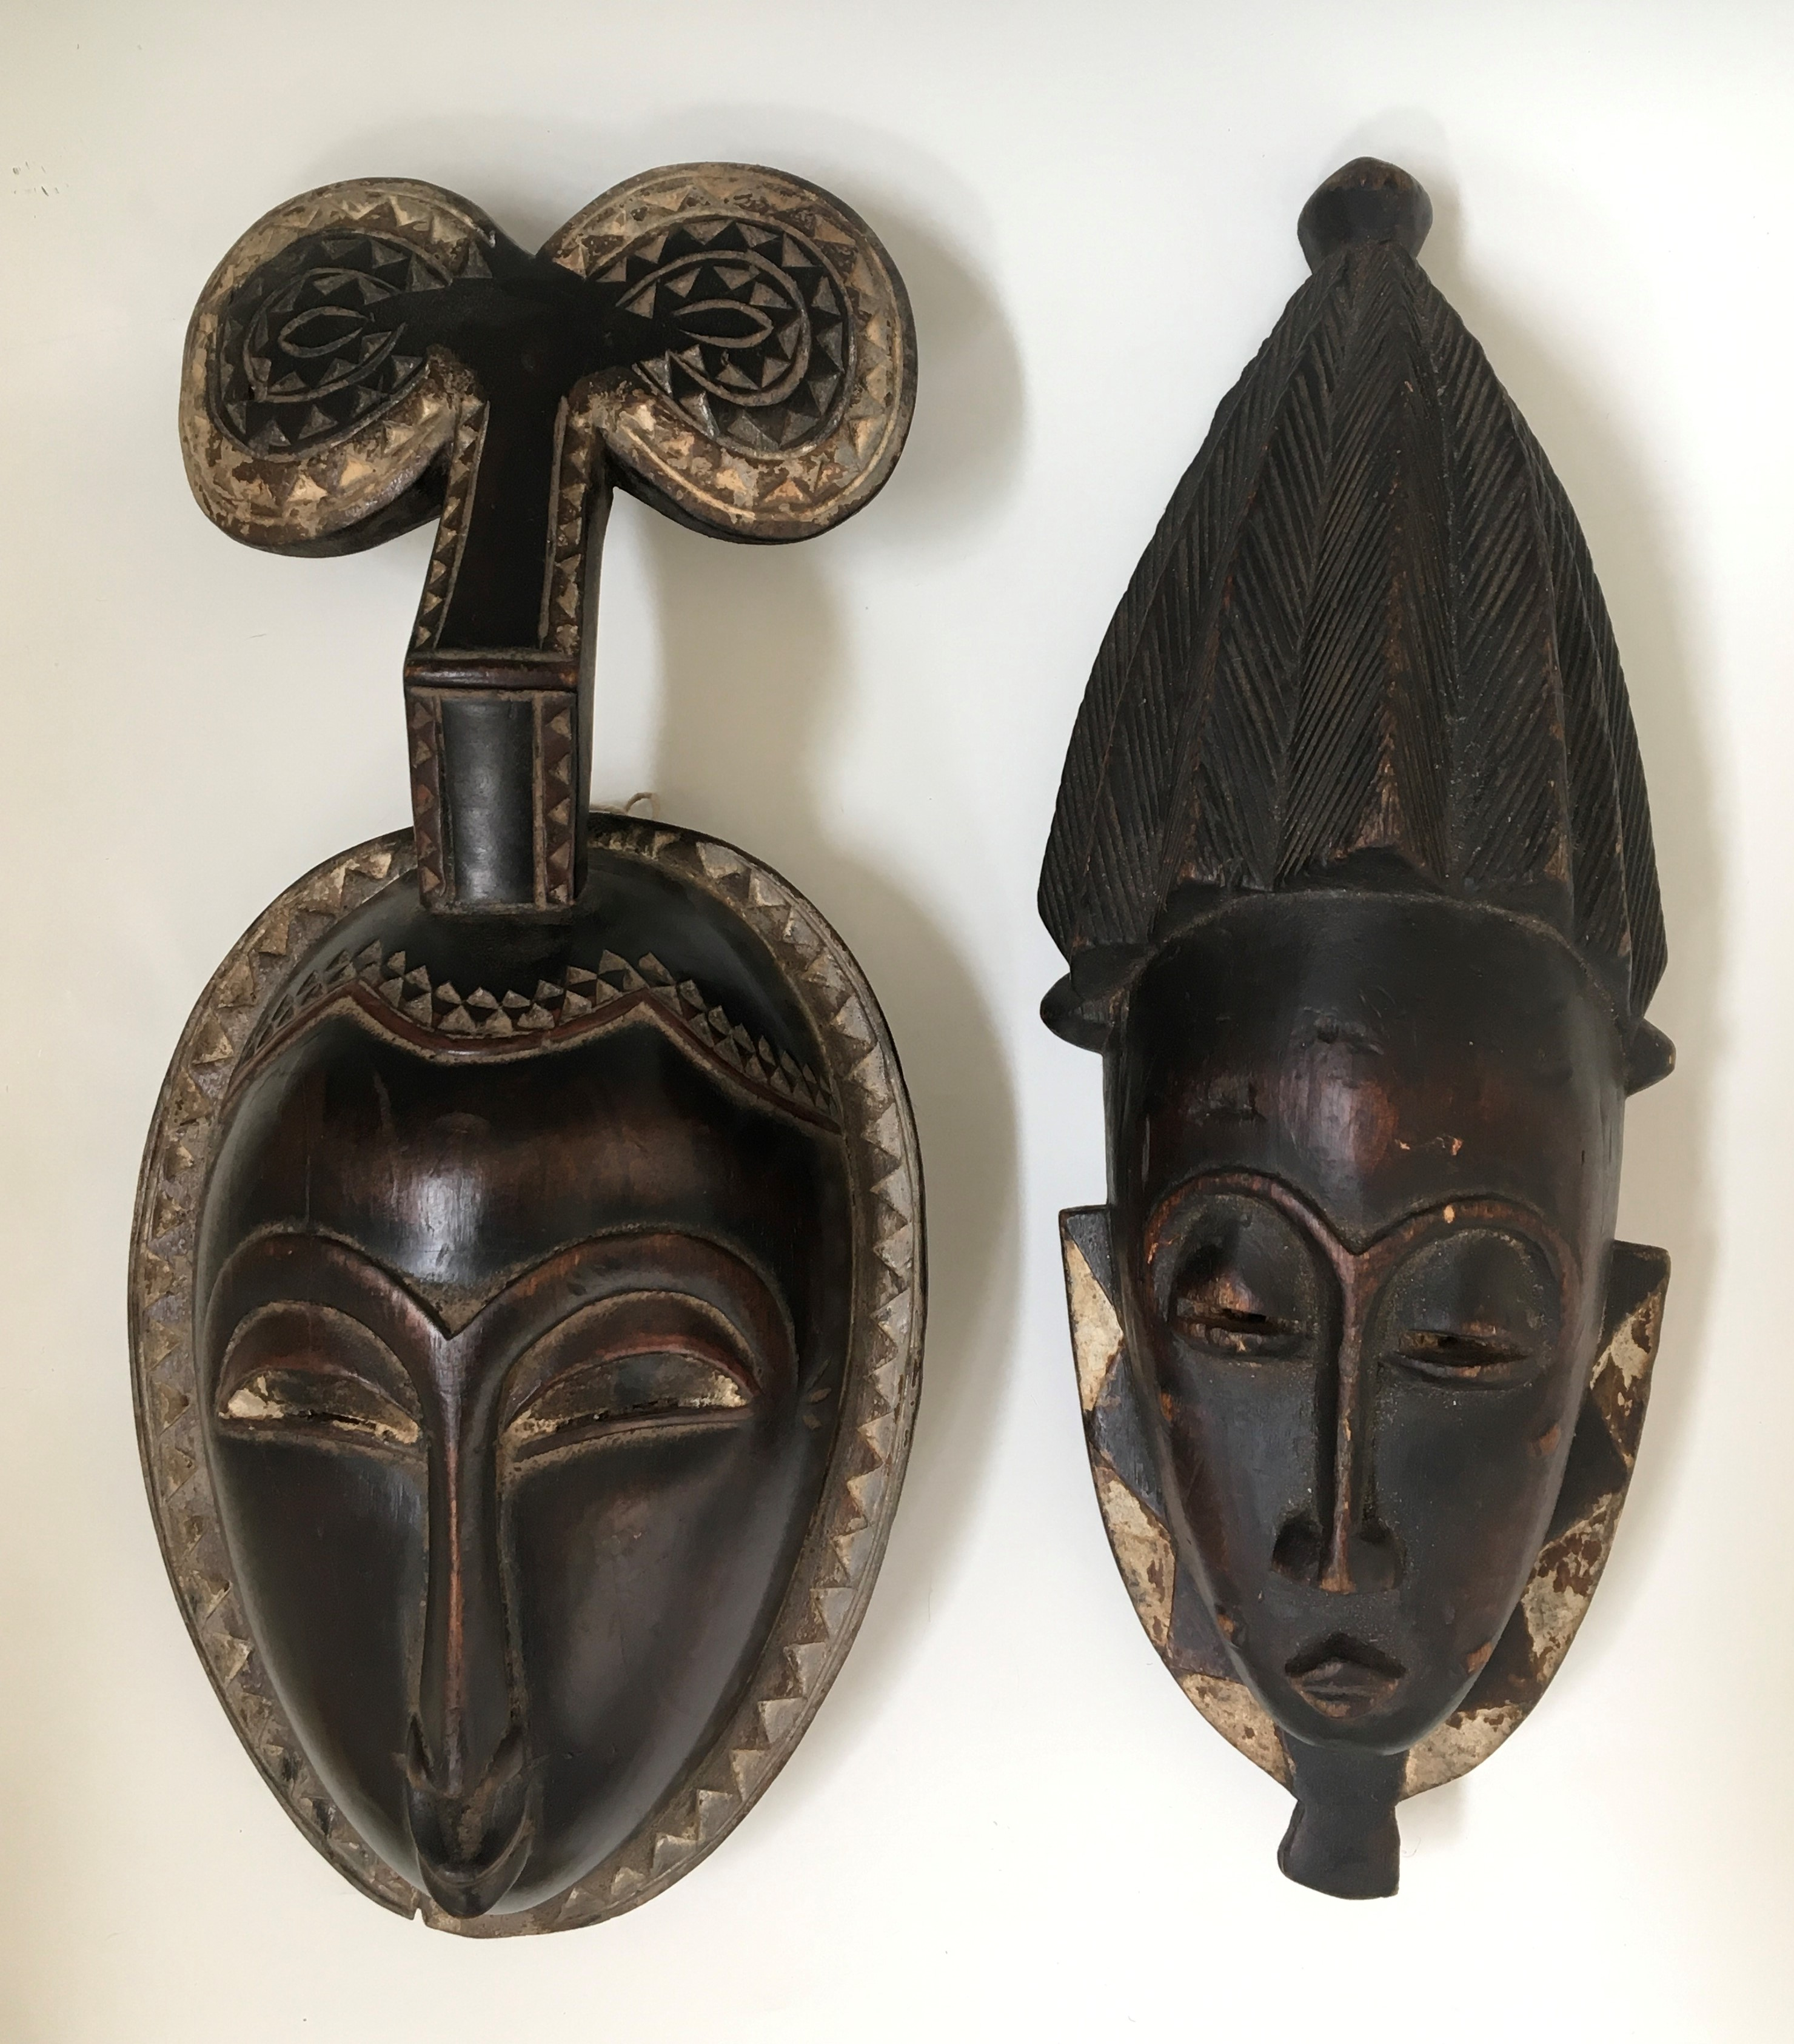 Two West African tribal face masks, with diamond borders and traces of white painted detail.